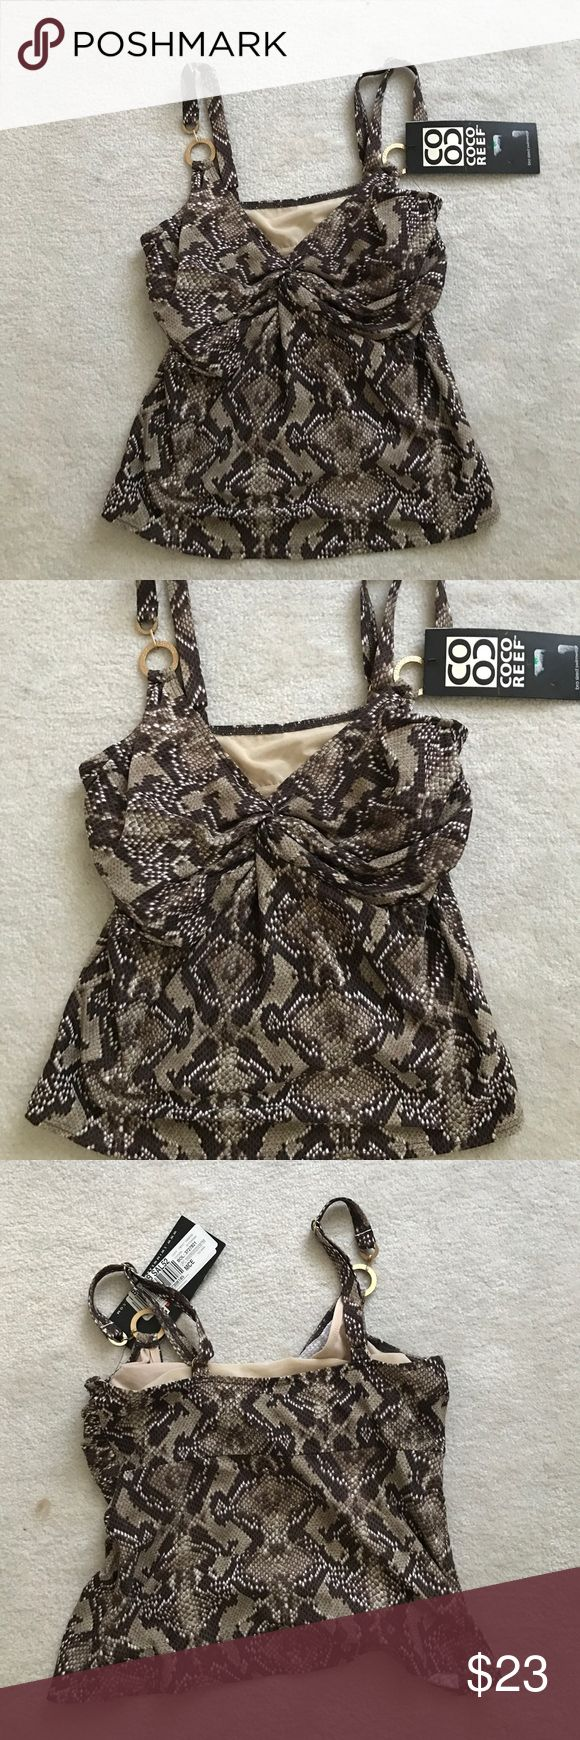 NWT Coco Reek Brown Beige Tankini 32D Very nice Tankini with underwire bra and adjustable straps. Coco Reef Swim One Pieces